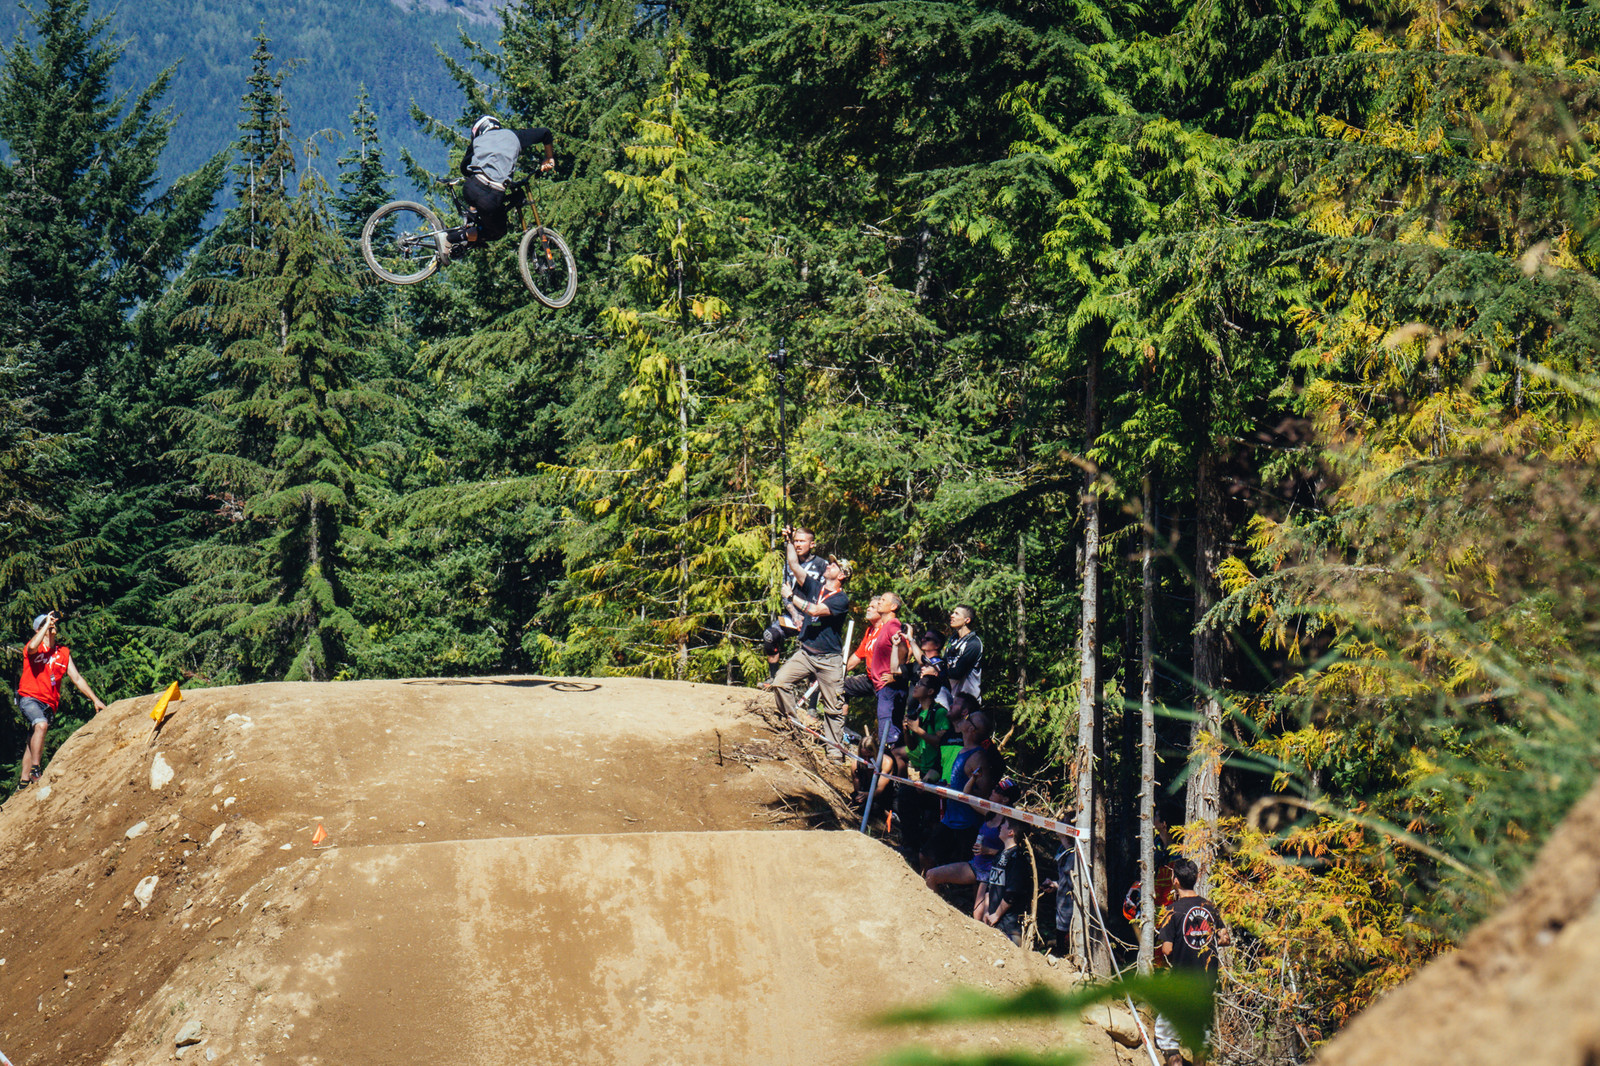 Warren Kniss - Whip Off World Champs Qualifiers - Going for Broke: 14 Super Sideways Senders from Whip Off World Champs Qualifiers - Mountain Biking Pictures - Vital MTB